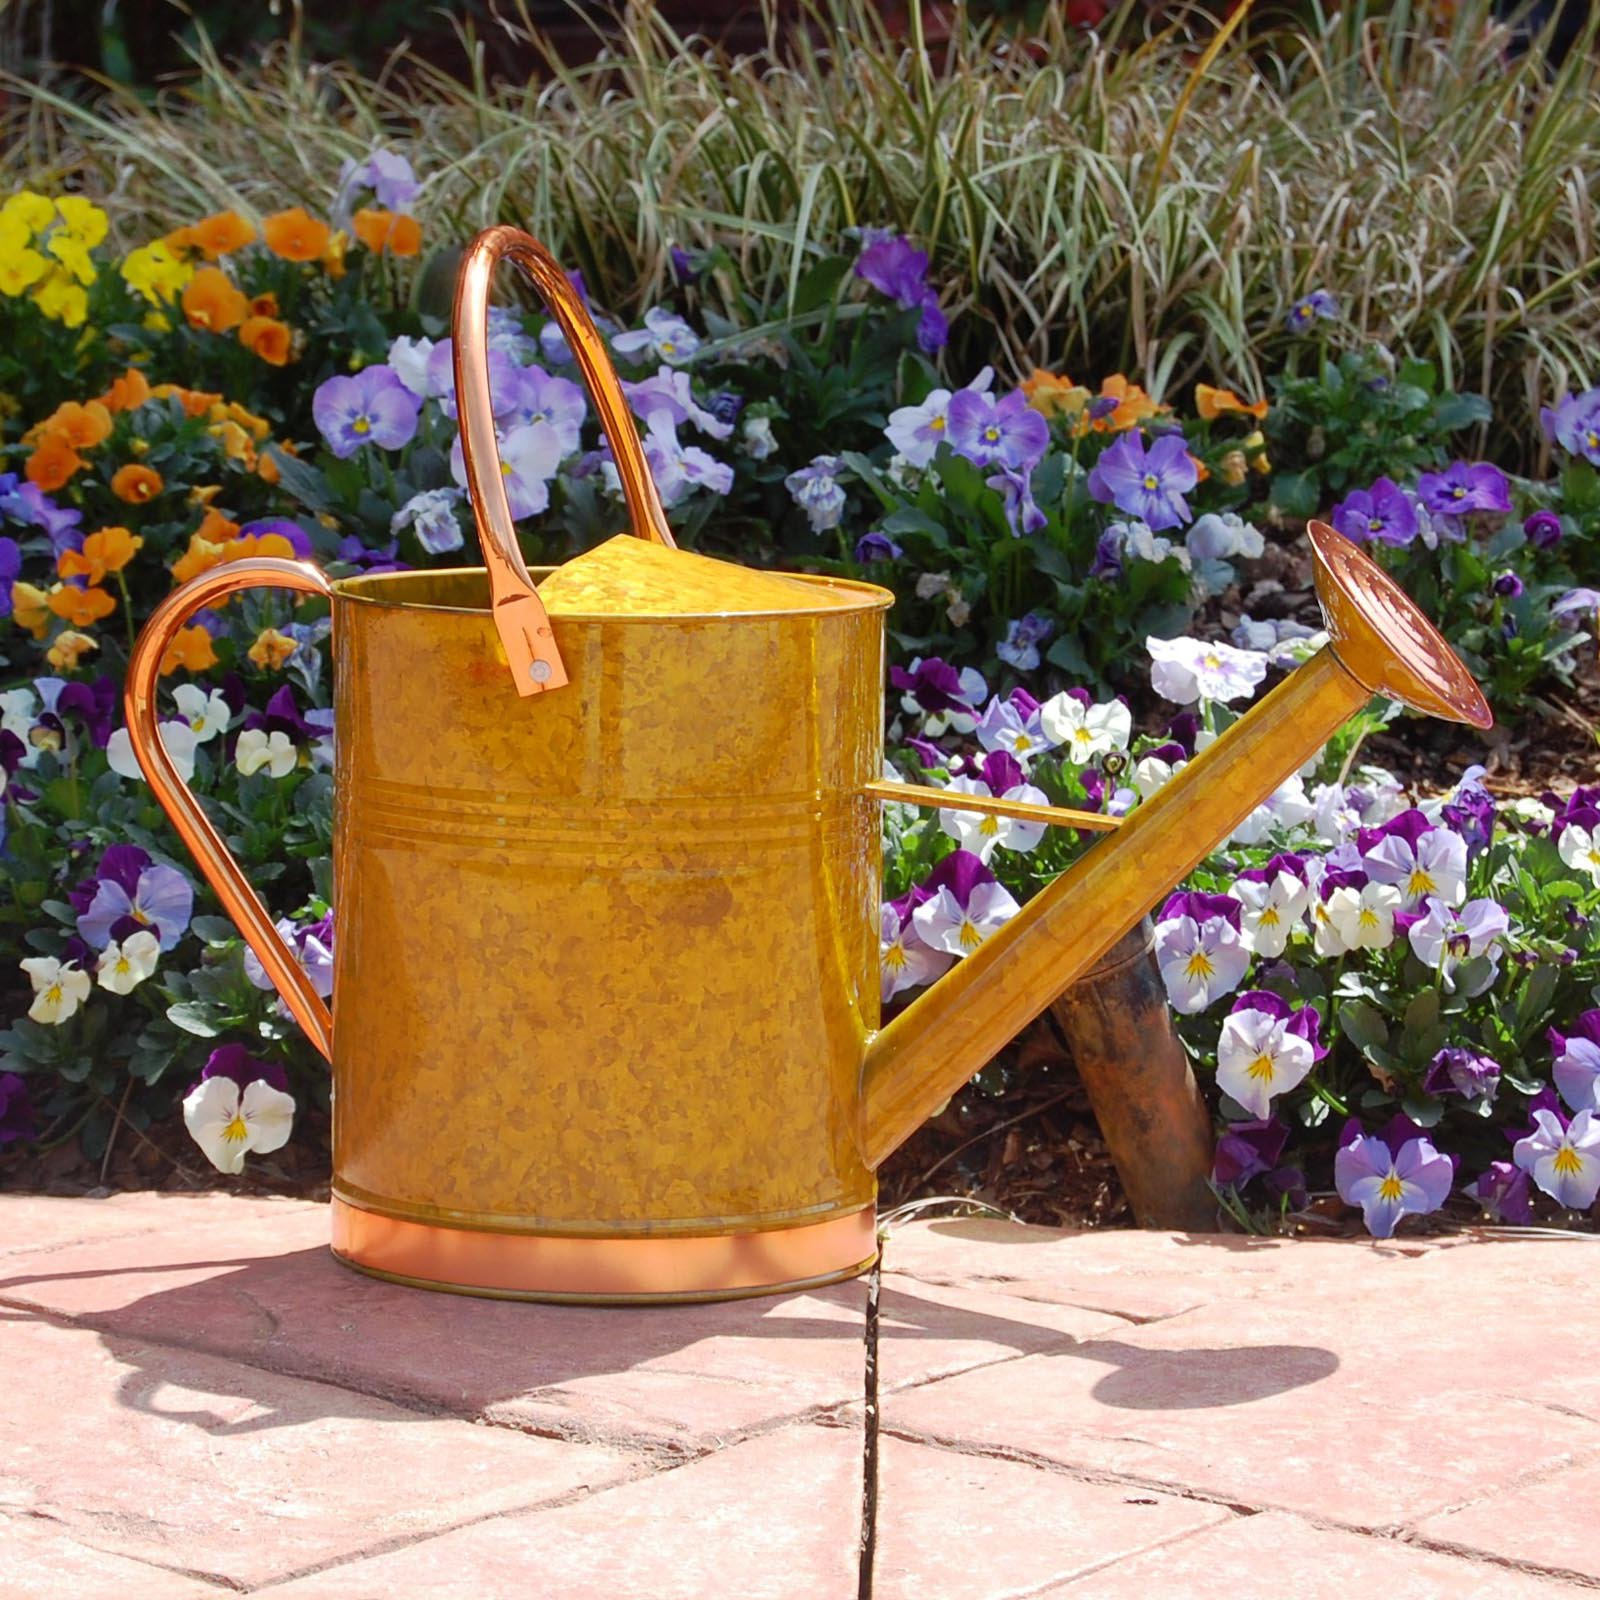 Austram-Griffith Creek Designs Deluxe Watering Can with Copper Accents by Austram Inc